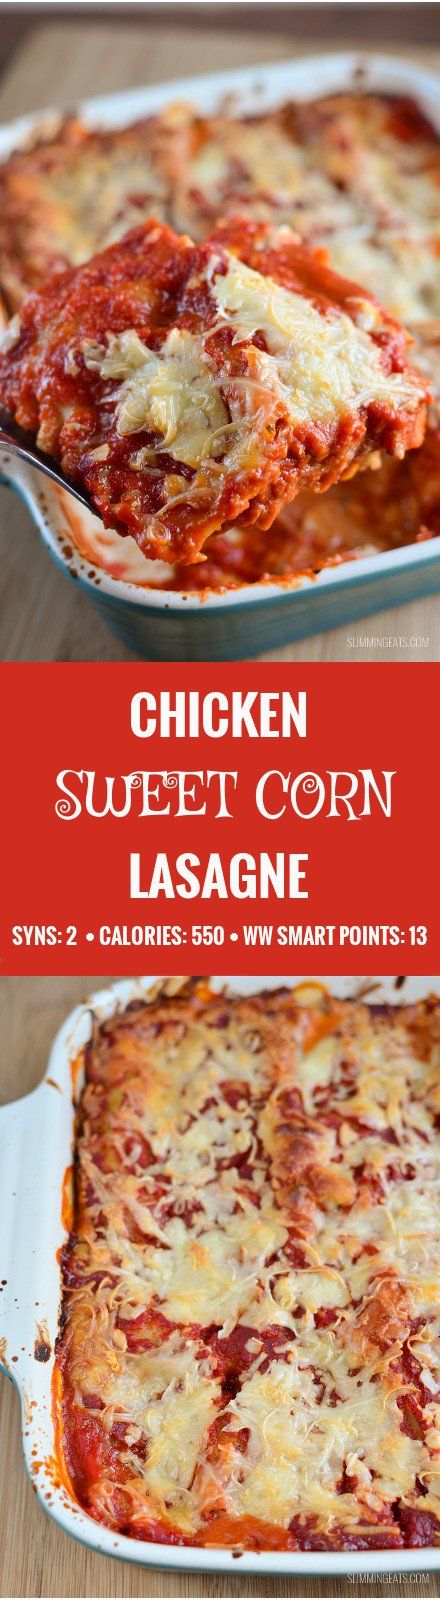 Slimming Eats Chicken and Sweetcorn Lasagne - gluten free, Slimming World and Weight Watchers friendly